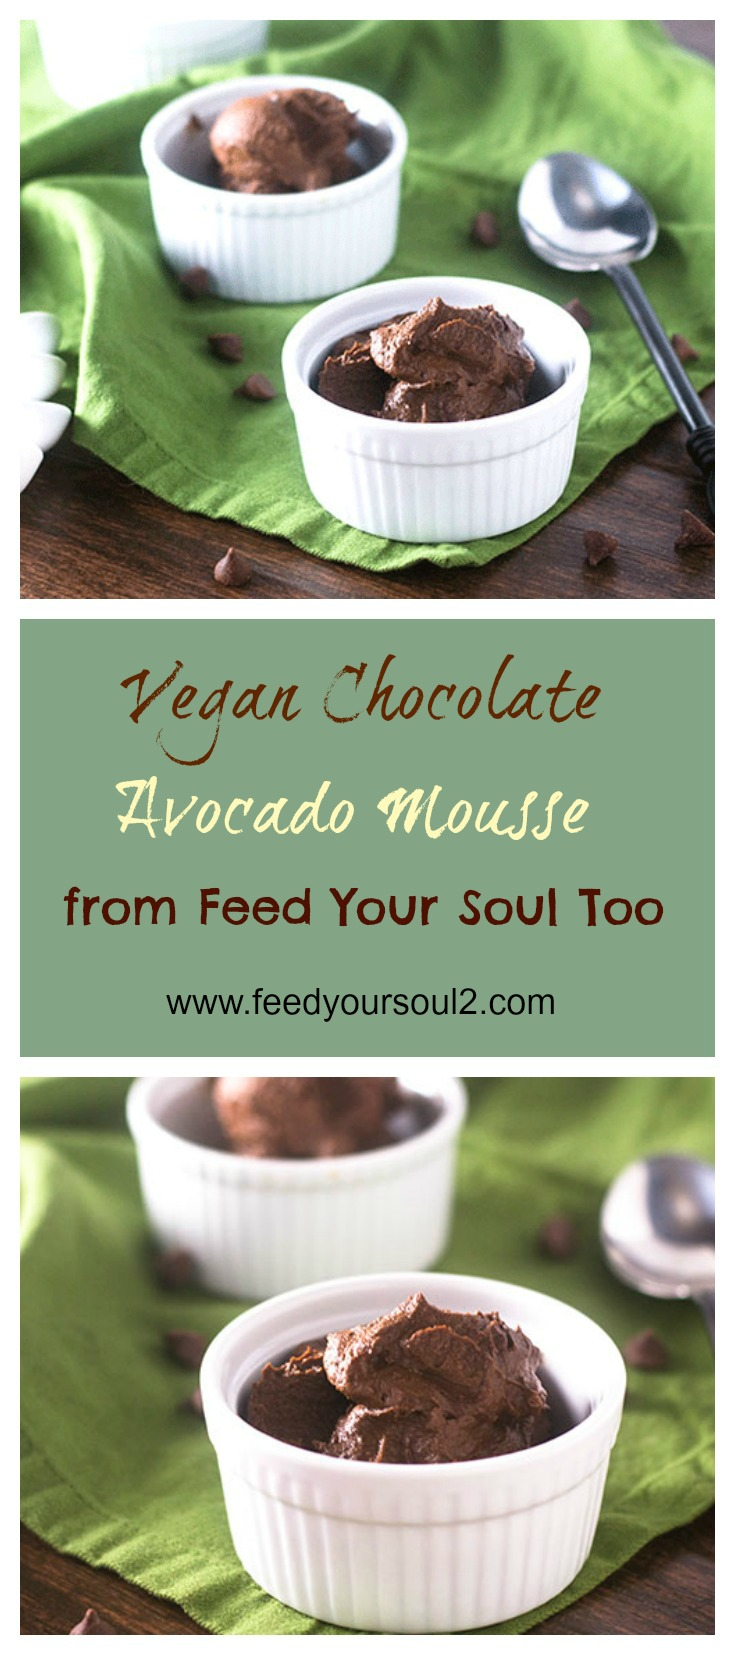 Vegan Chocolate Avocado Mousse #vegan #chocolate #dessert | feedyoursoul2.com